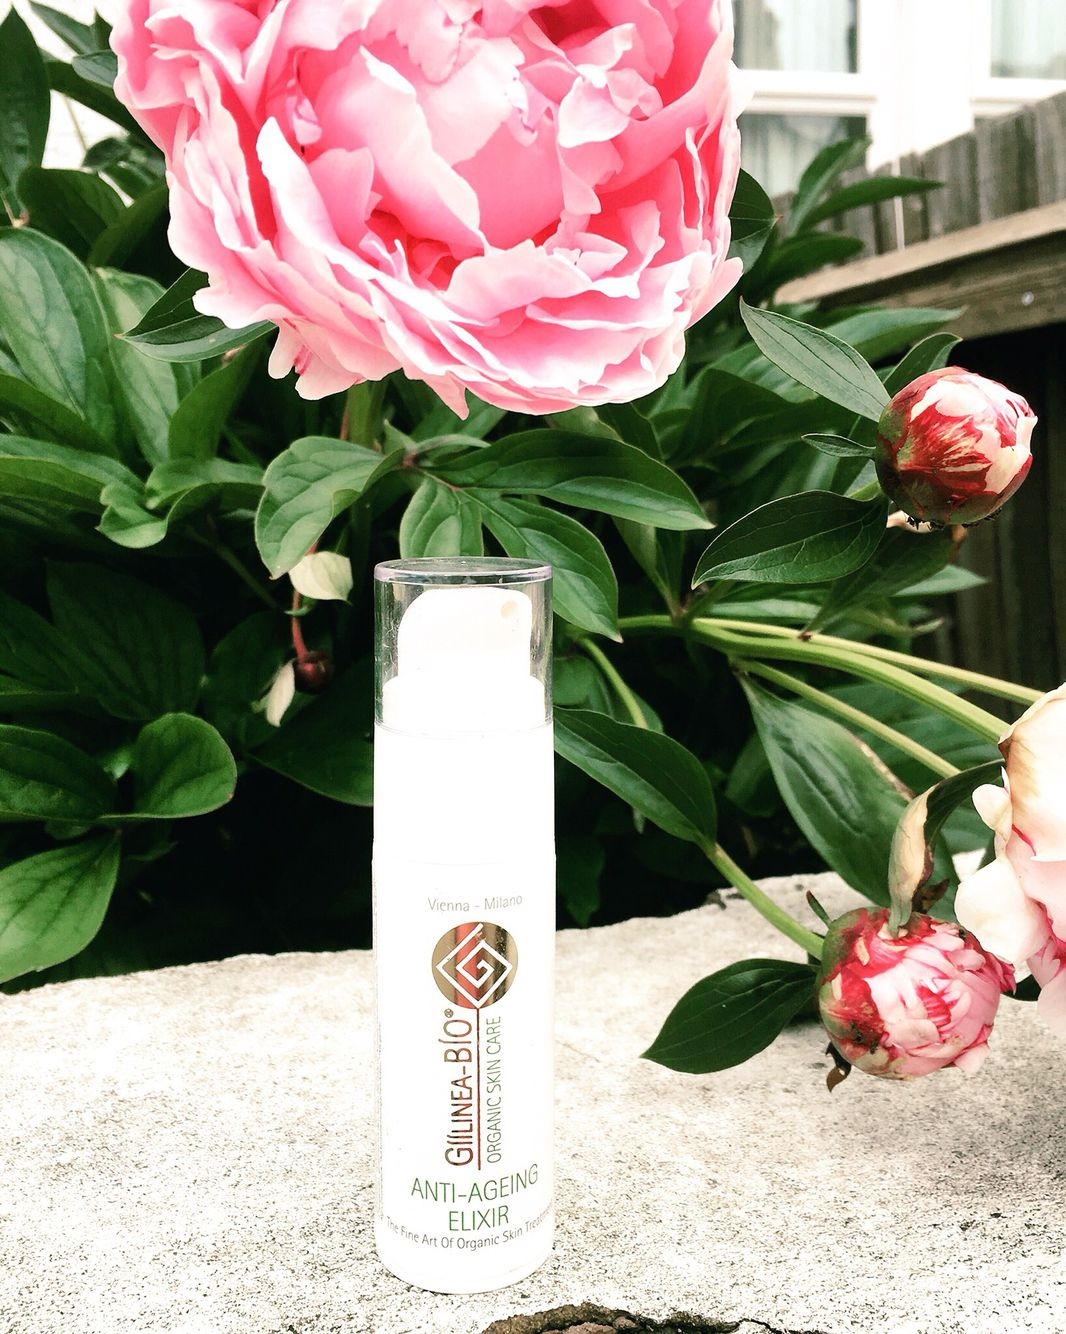 Giilinea Bio Organic Anti Ageing Elixir Was Developed To Provide Our